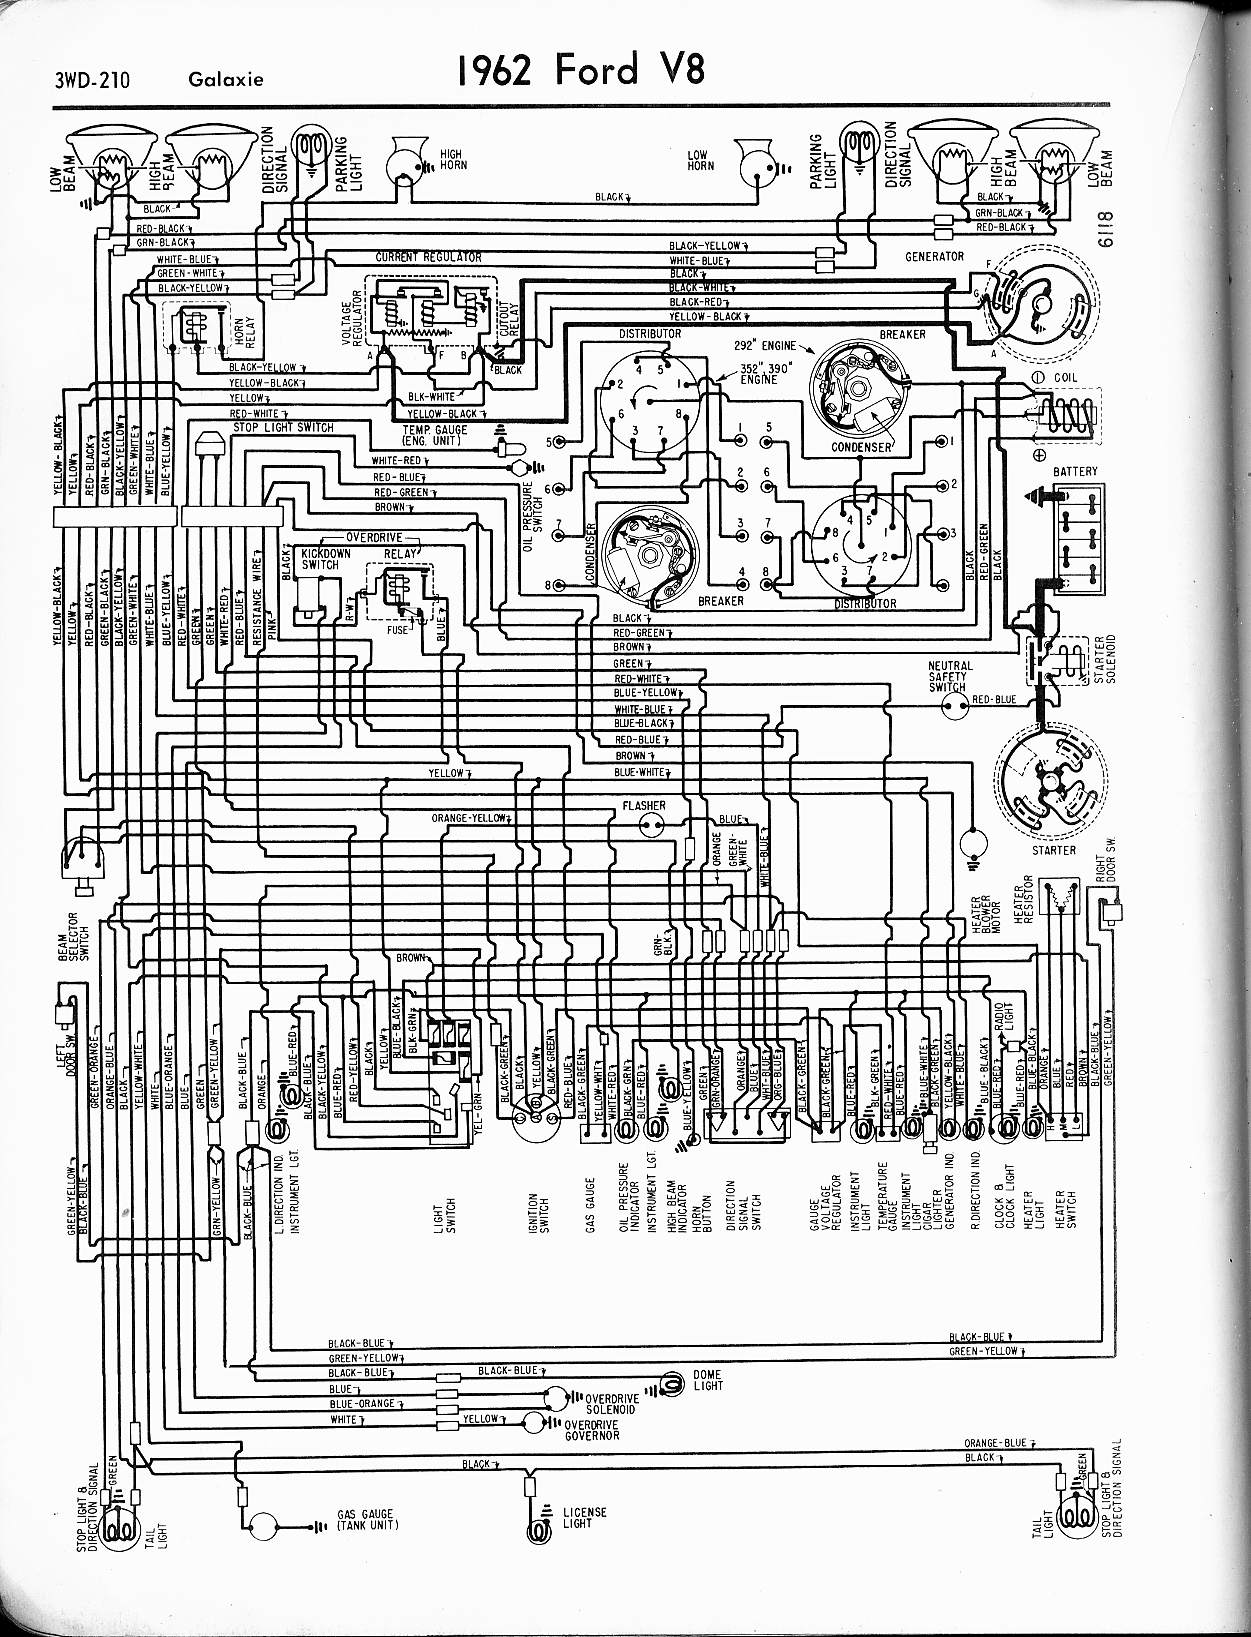 57 65 Ford Wiring Diagrams 1965 Ford F100 Electrical Diagram 1965 Ford F250  Wiring Diagram